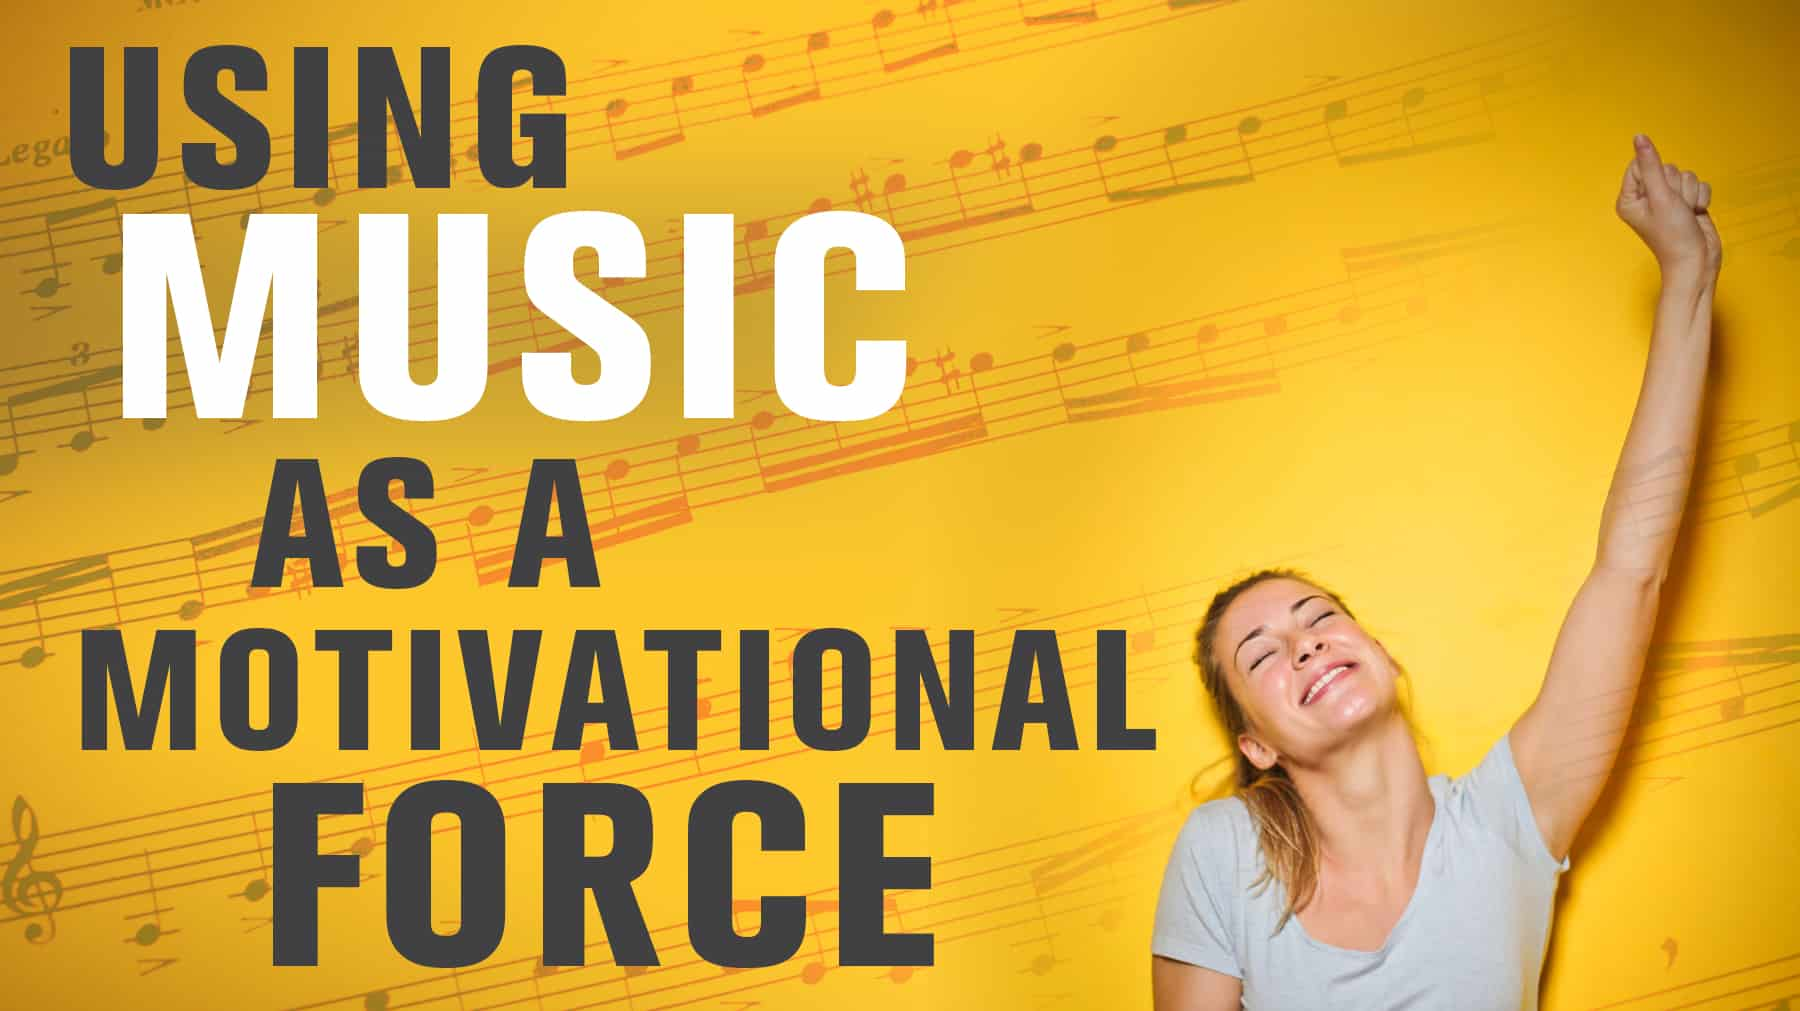 Using music as a motivational force